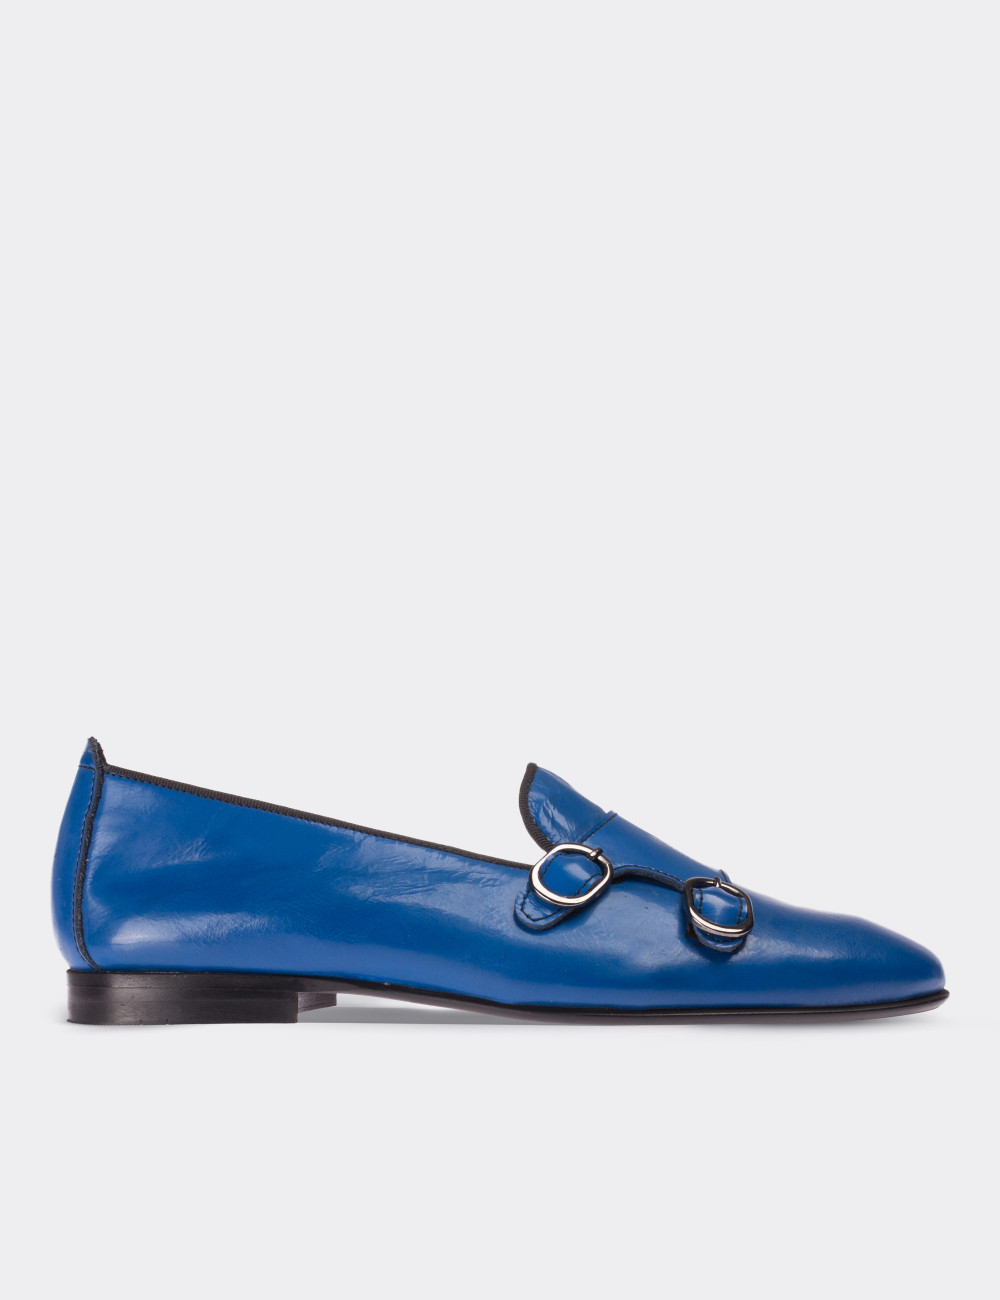 Blue Patent Leather Loafers - Deery